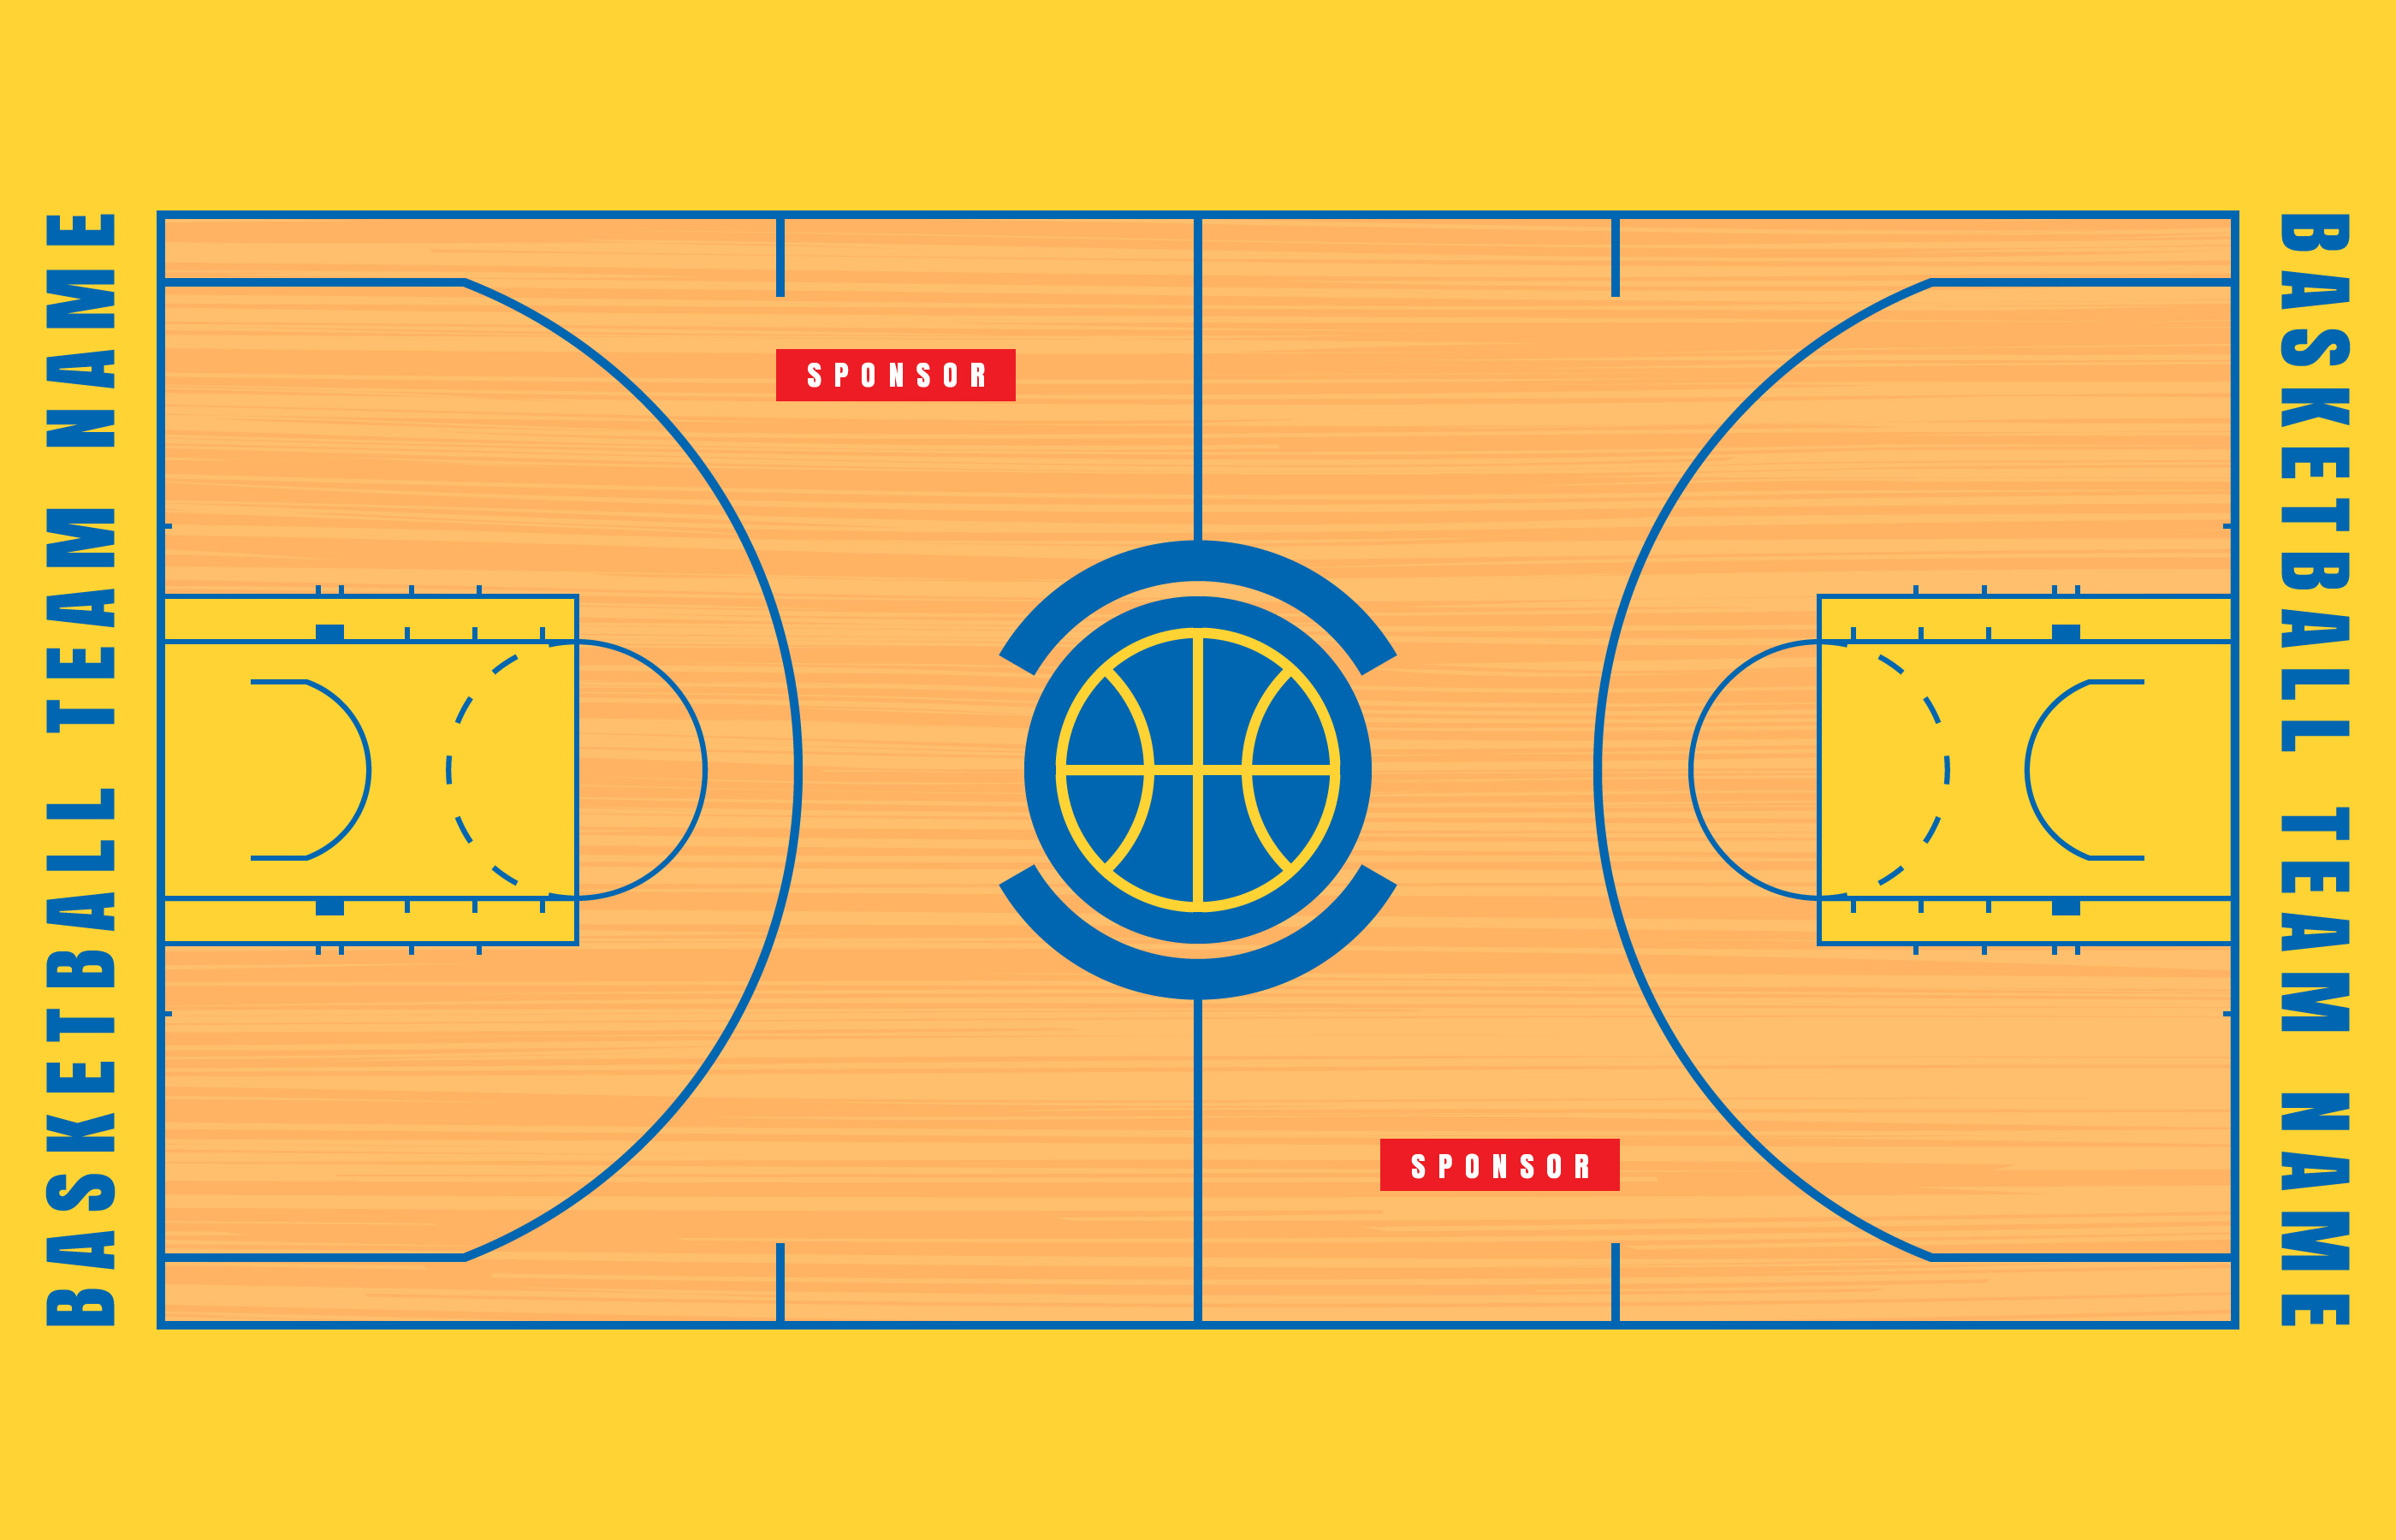 Basketball Court Floor Plan Illustration Download Free Vectors